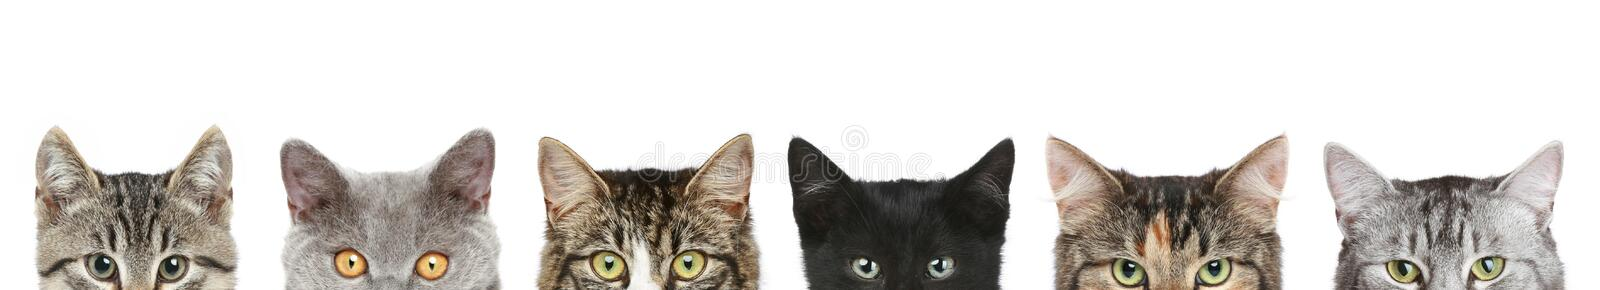 Cats half heads on a white background stock images